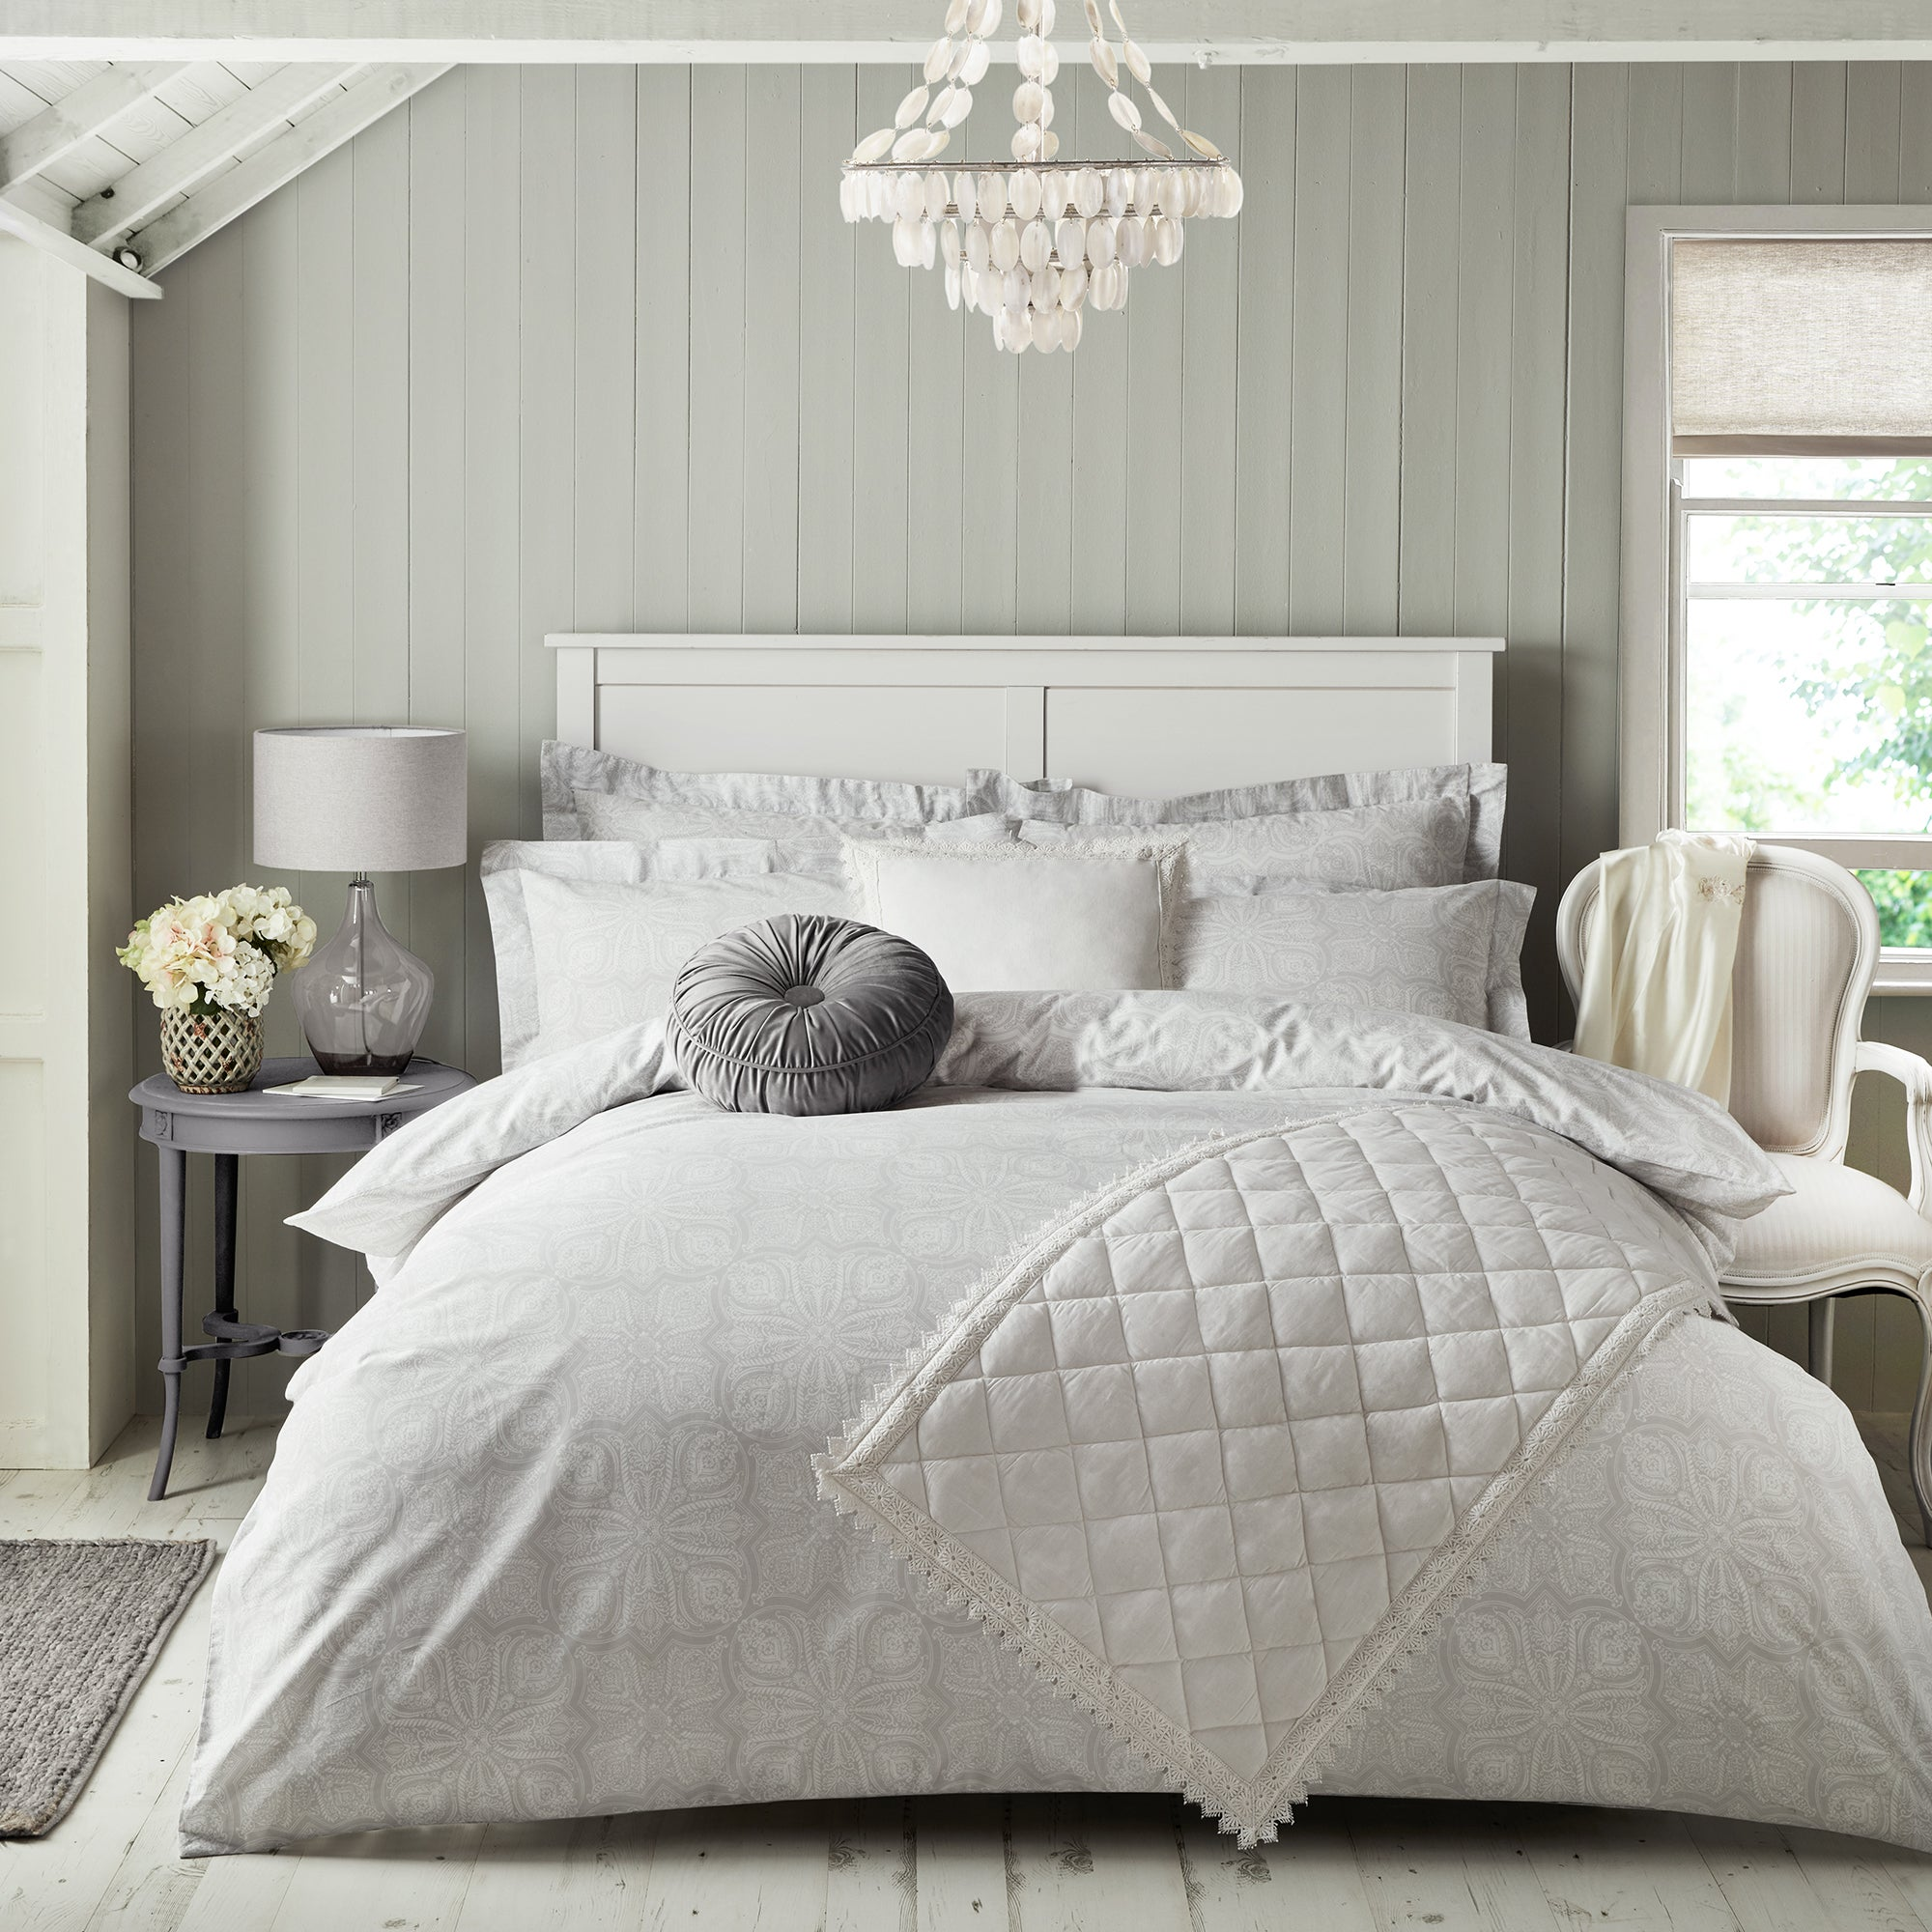 Holly Willoughby Holly Willoughby Zuri Grey 100% Cotton Duvet Cover and Pillowcase Set Grey | Single